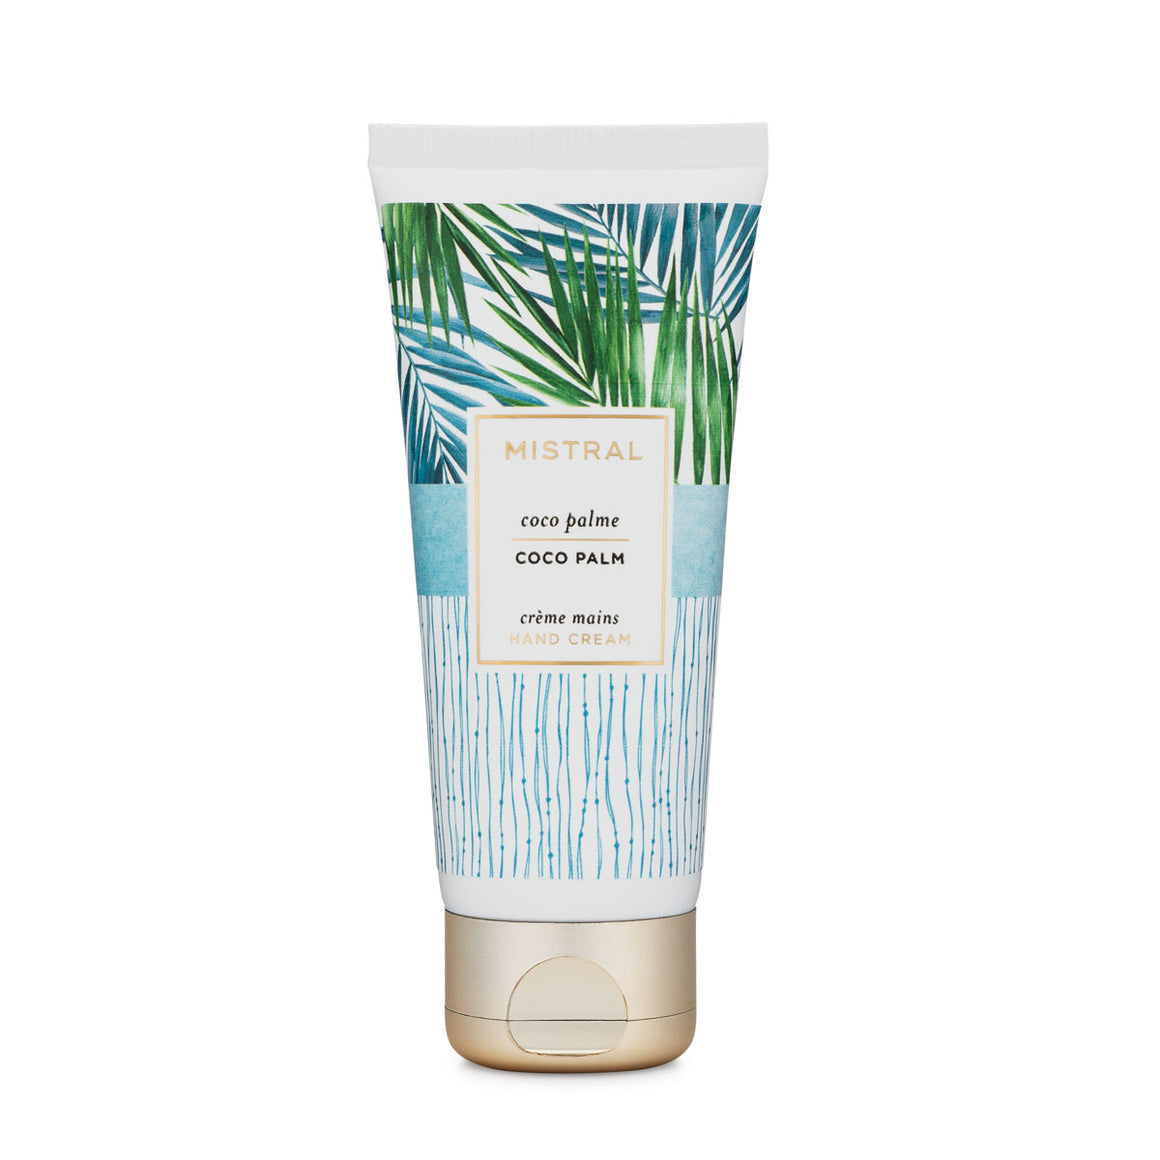 Coco Palm Papiers Fantaisie Hand Cream